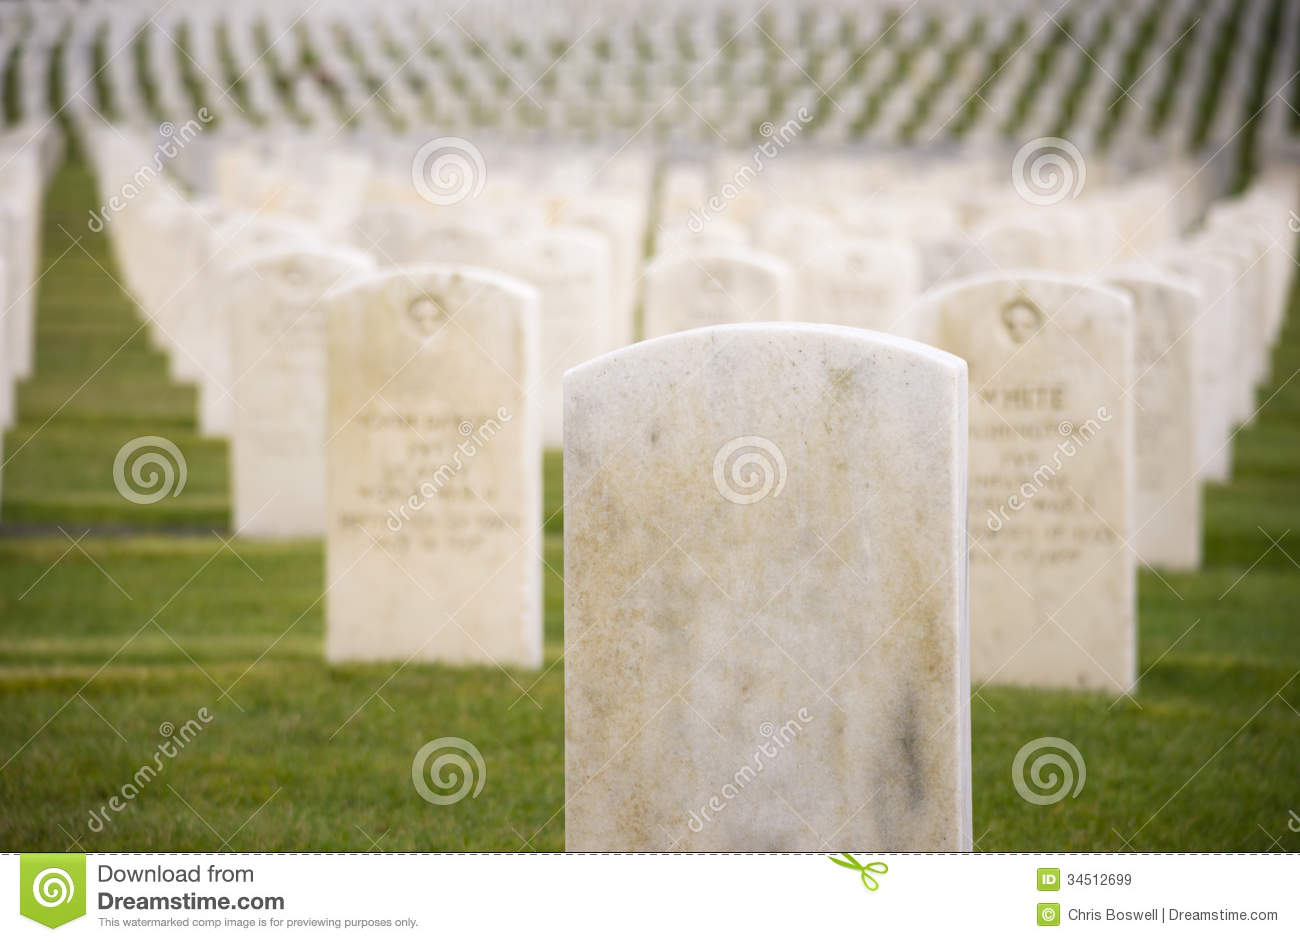 Marble Stone Military Headstones Hundreds Row Graveyard